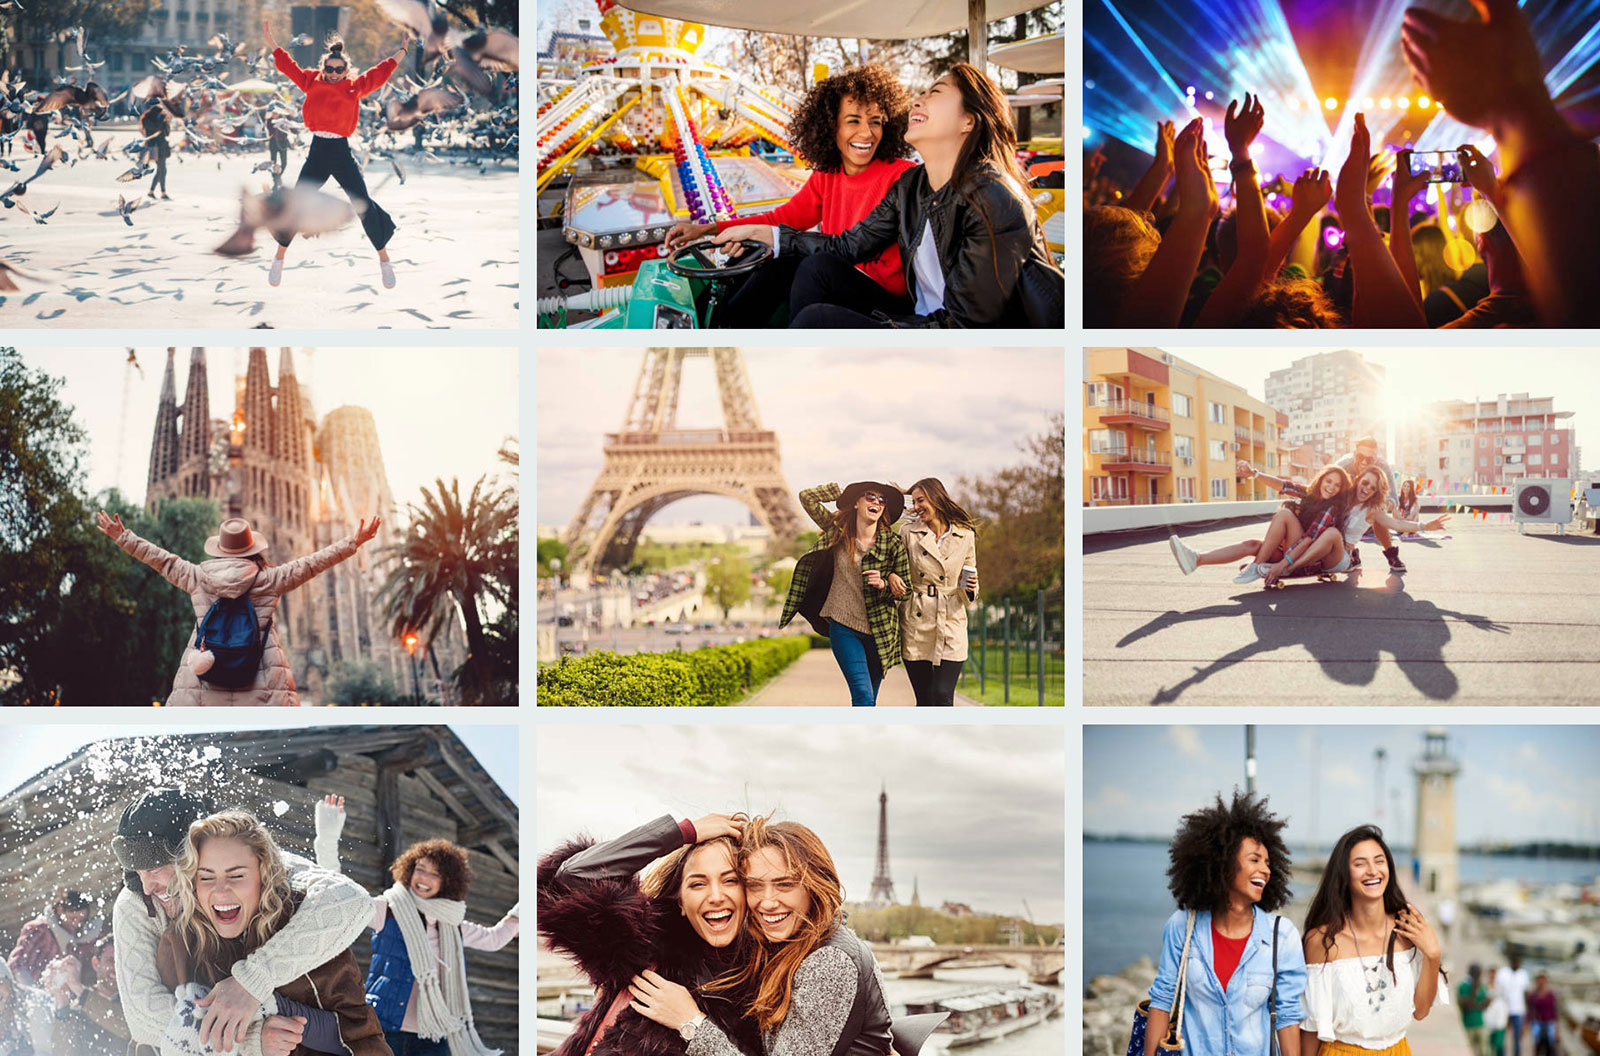 """iStock search results page for """"excitement female traveling"""" - showing various women having fun while traveling"""